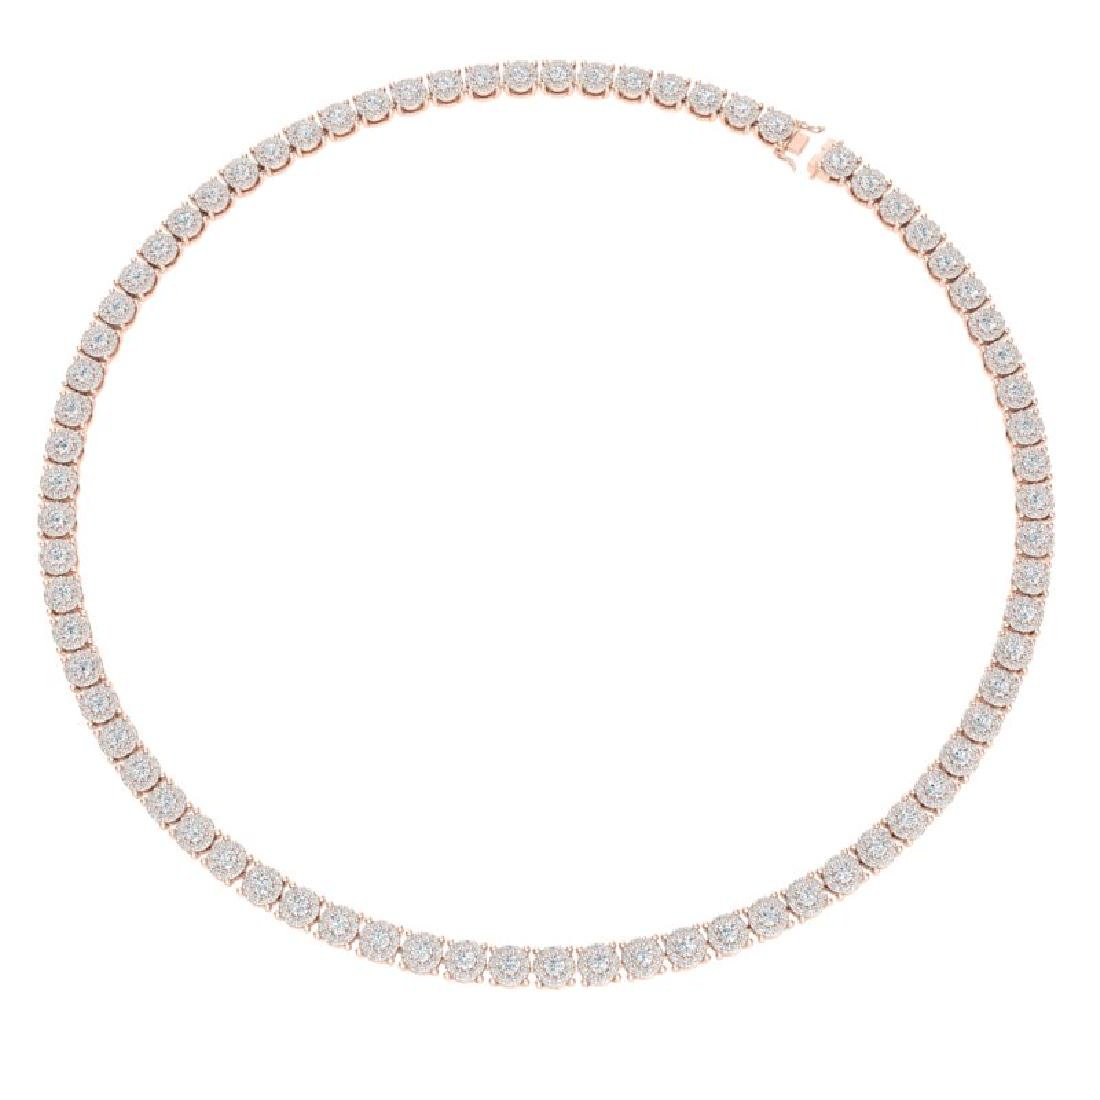 12 CTW Certified SI/I Diamond Halo Necklace 18K Rose - 3